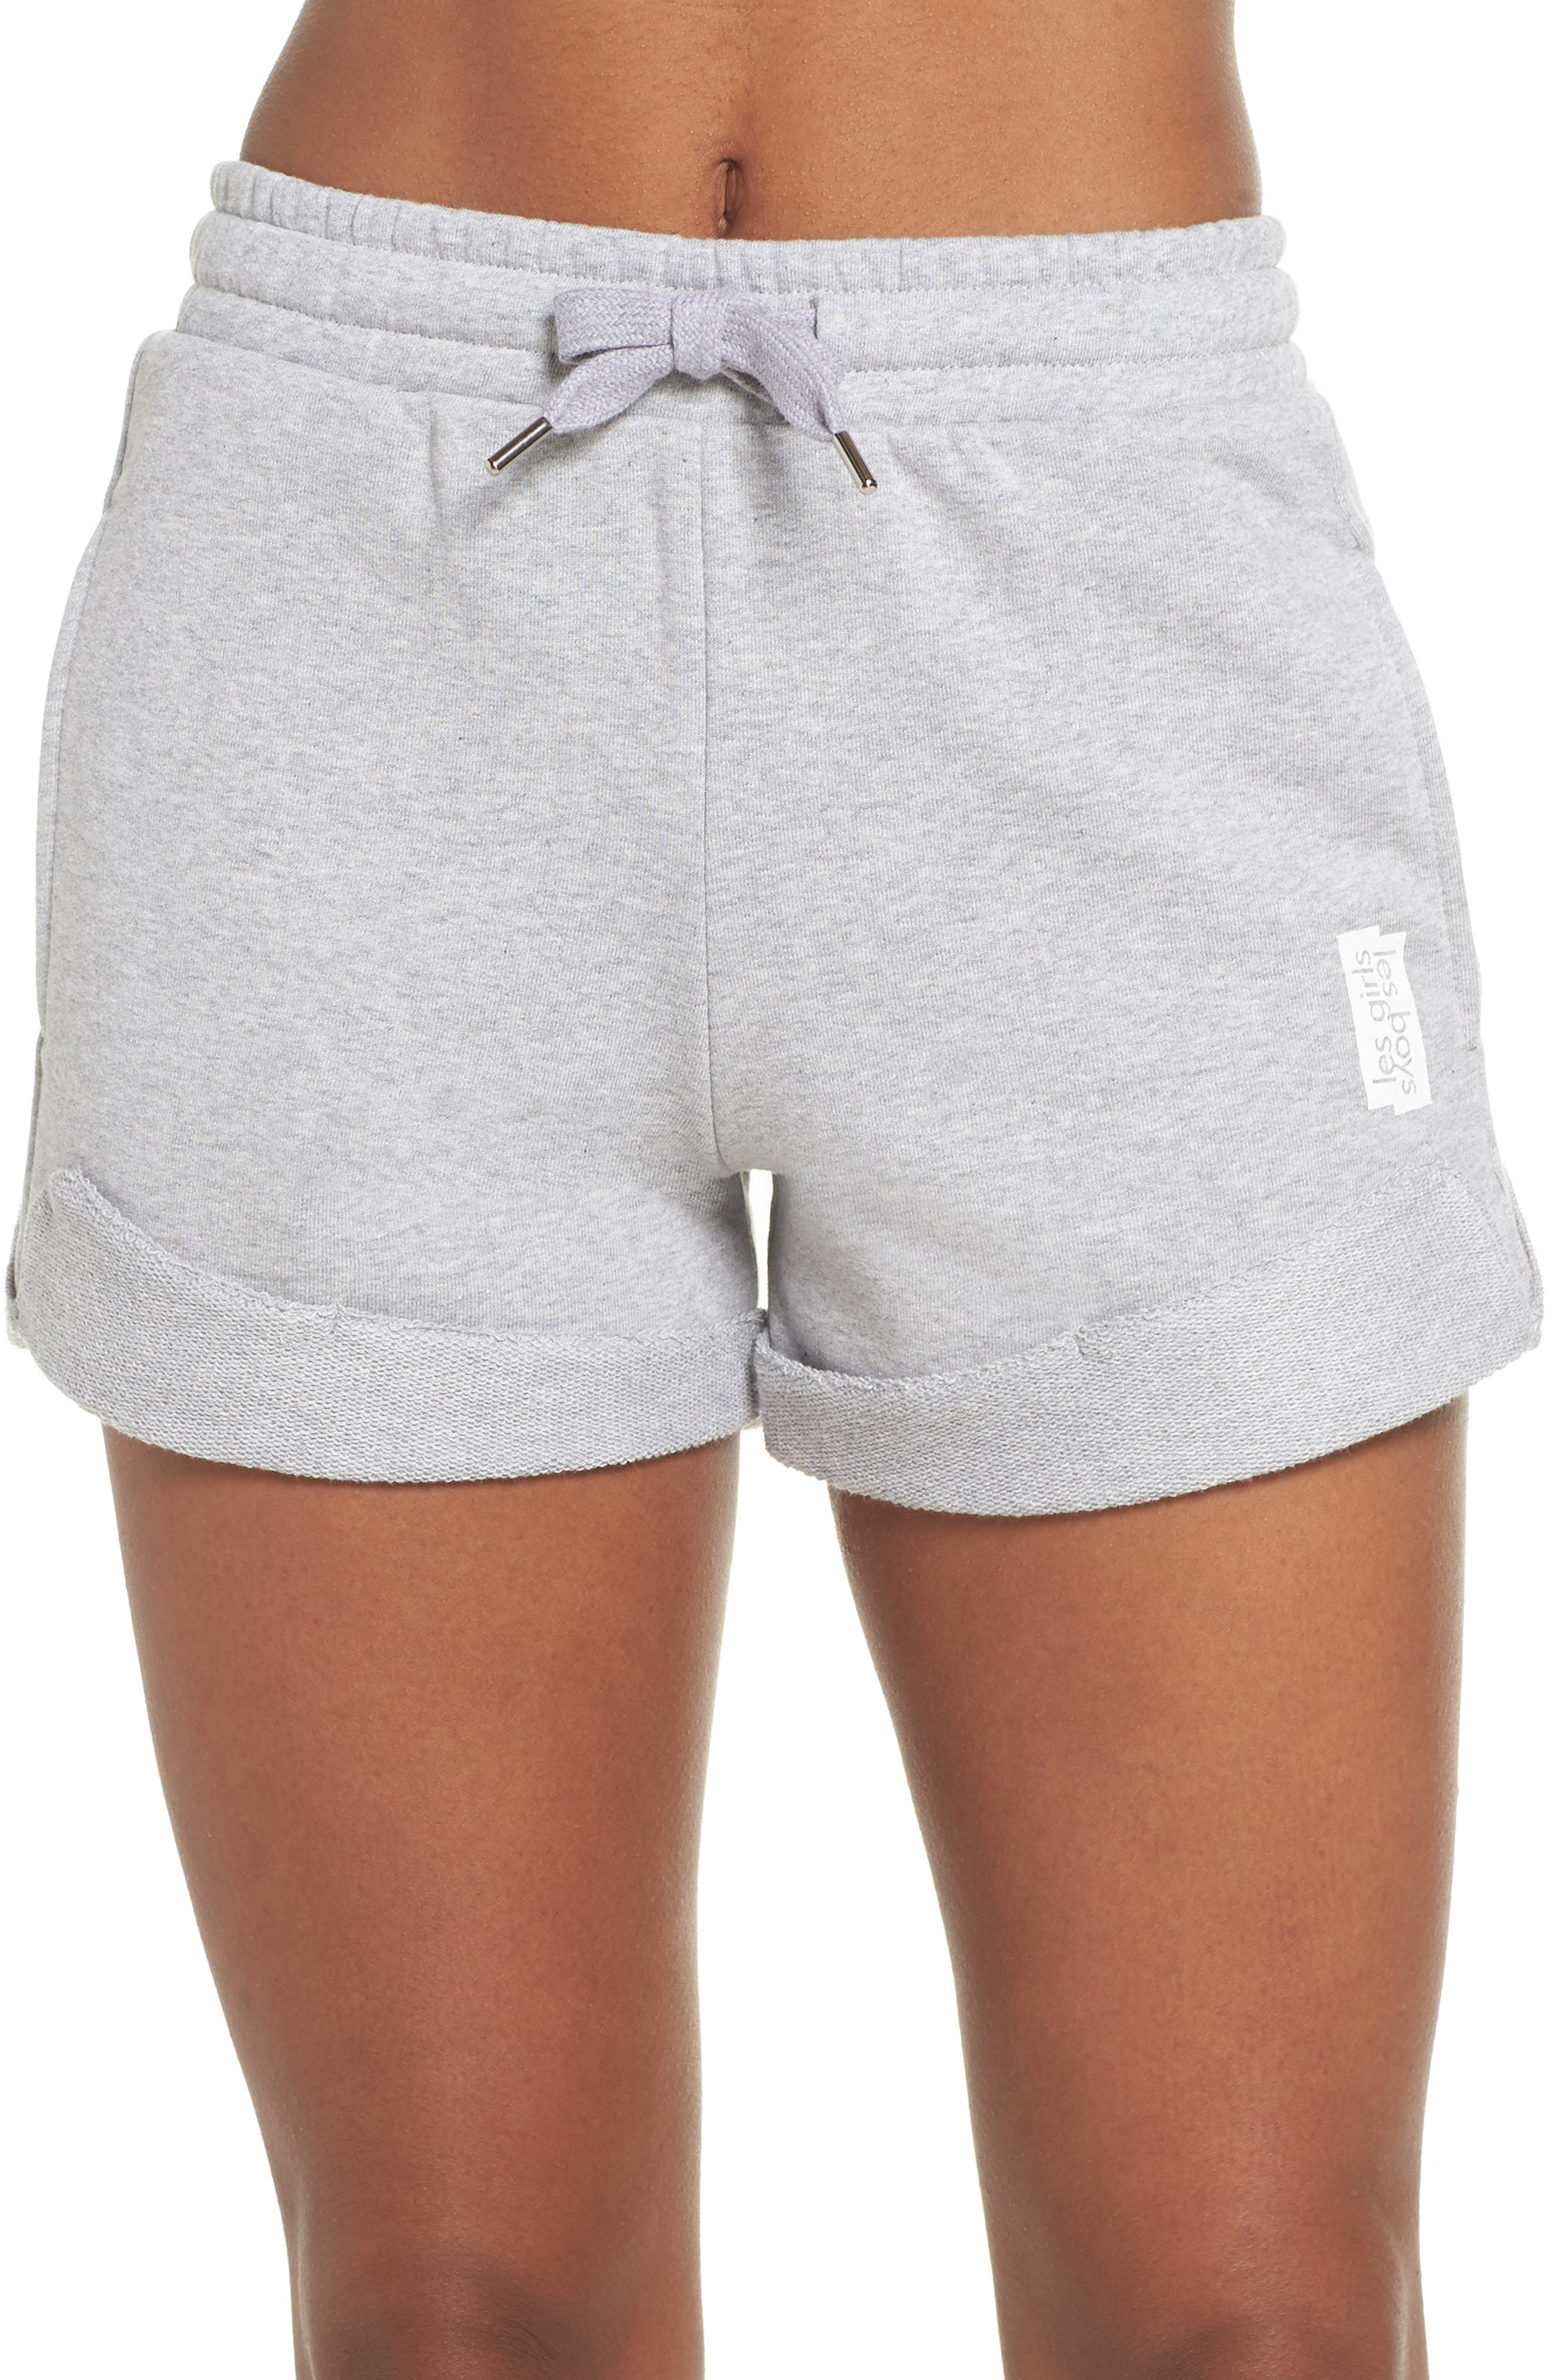 French Terry High Waist Shorts,                         Main,                         color, Light Grey Marl